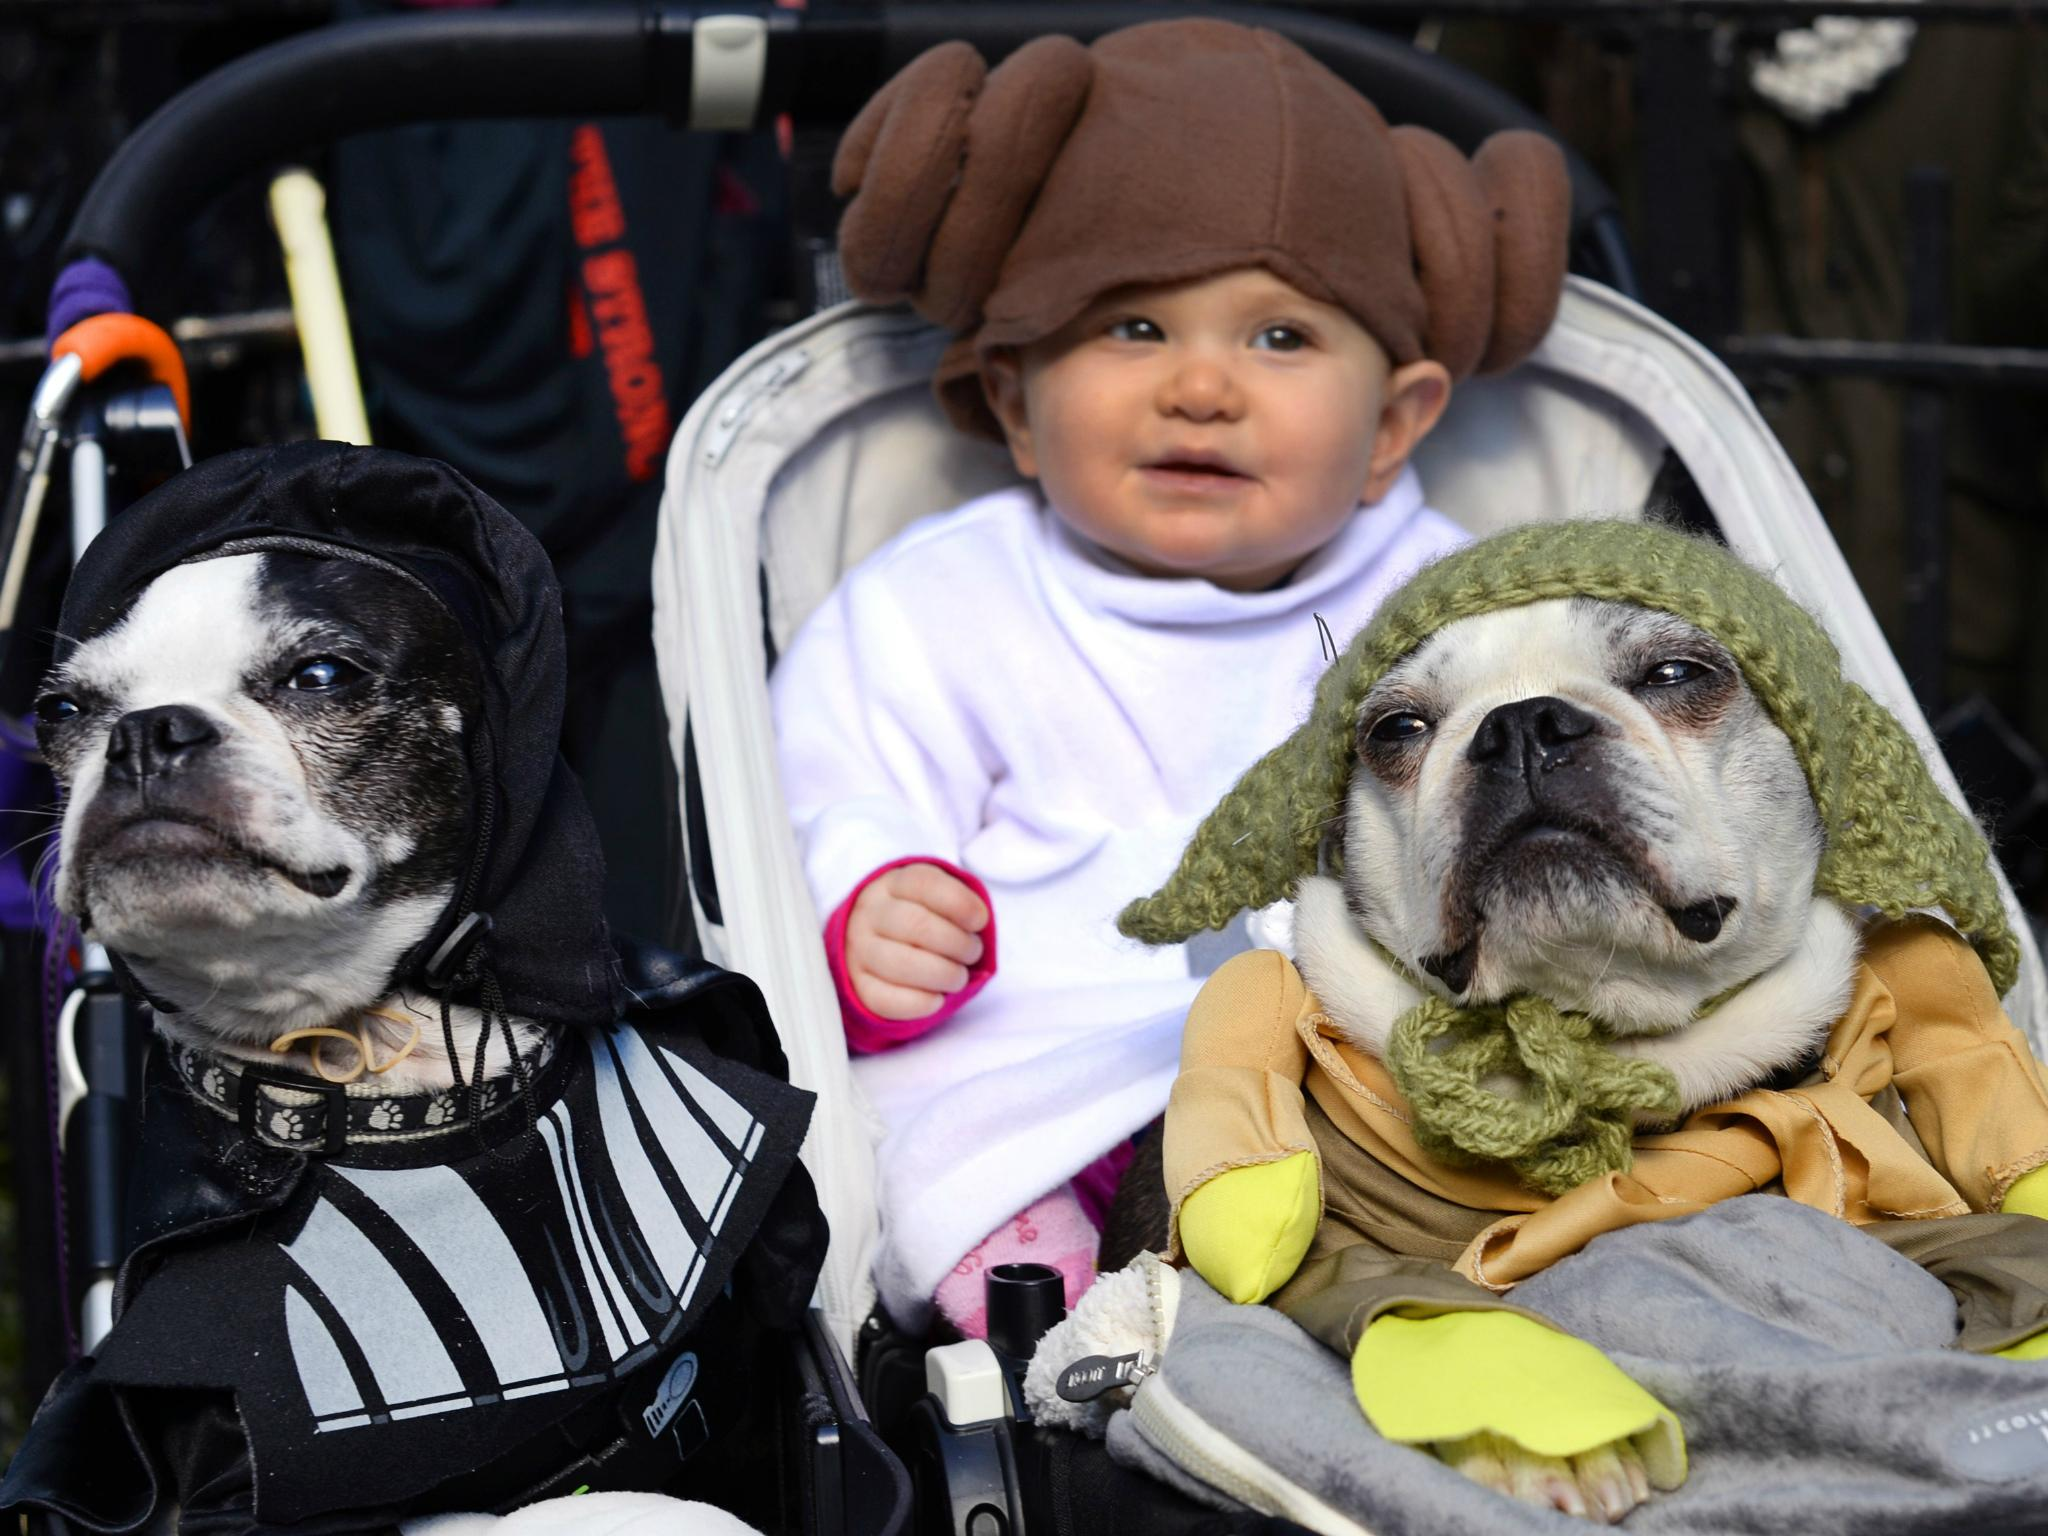 Living with dogs can help protect babies from range of illnesses lik…